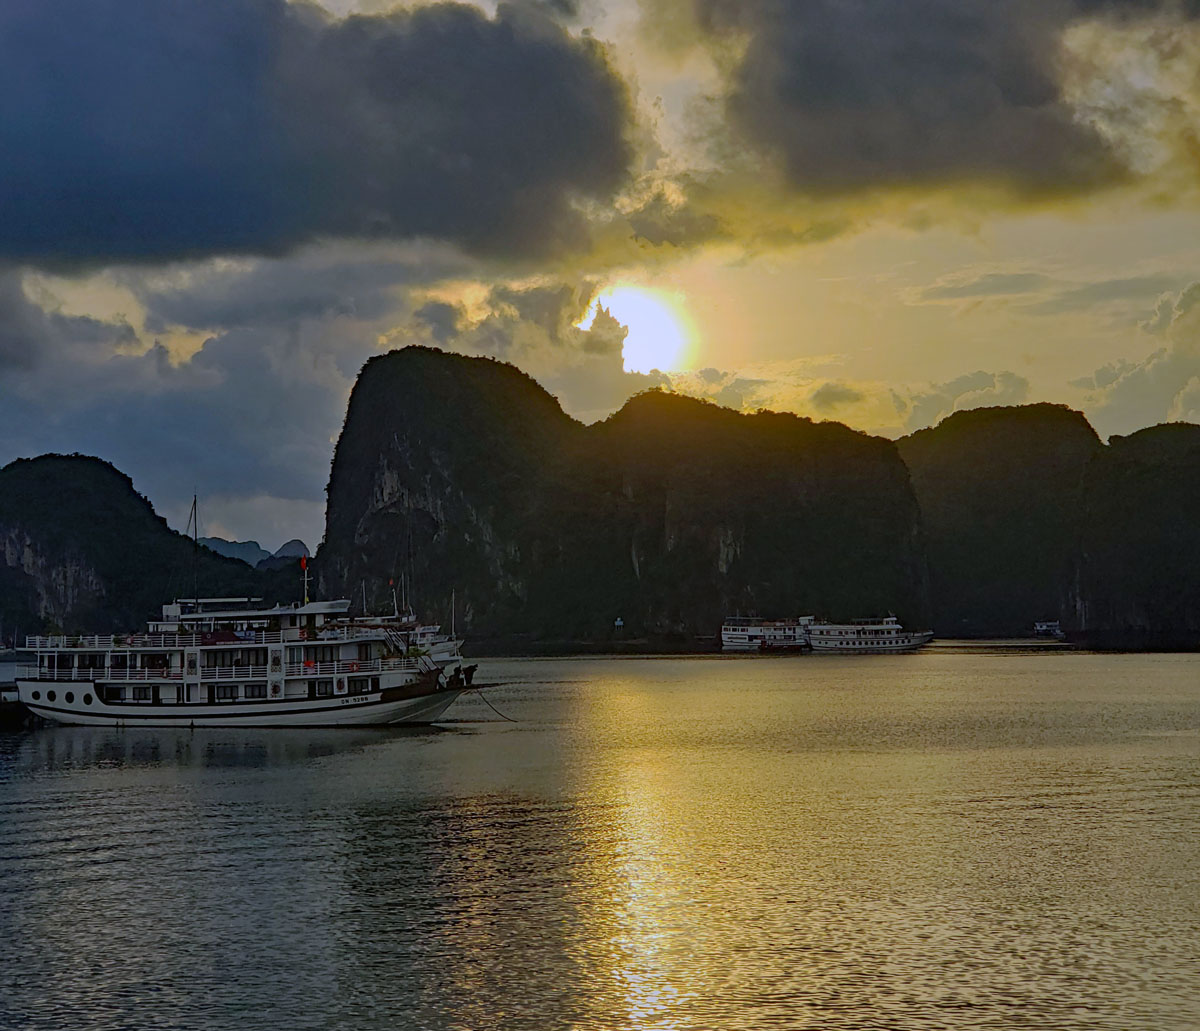 Ha Long Bay in the Gulf of Tonkin Vietnam